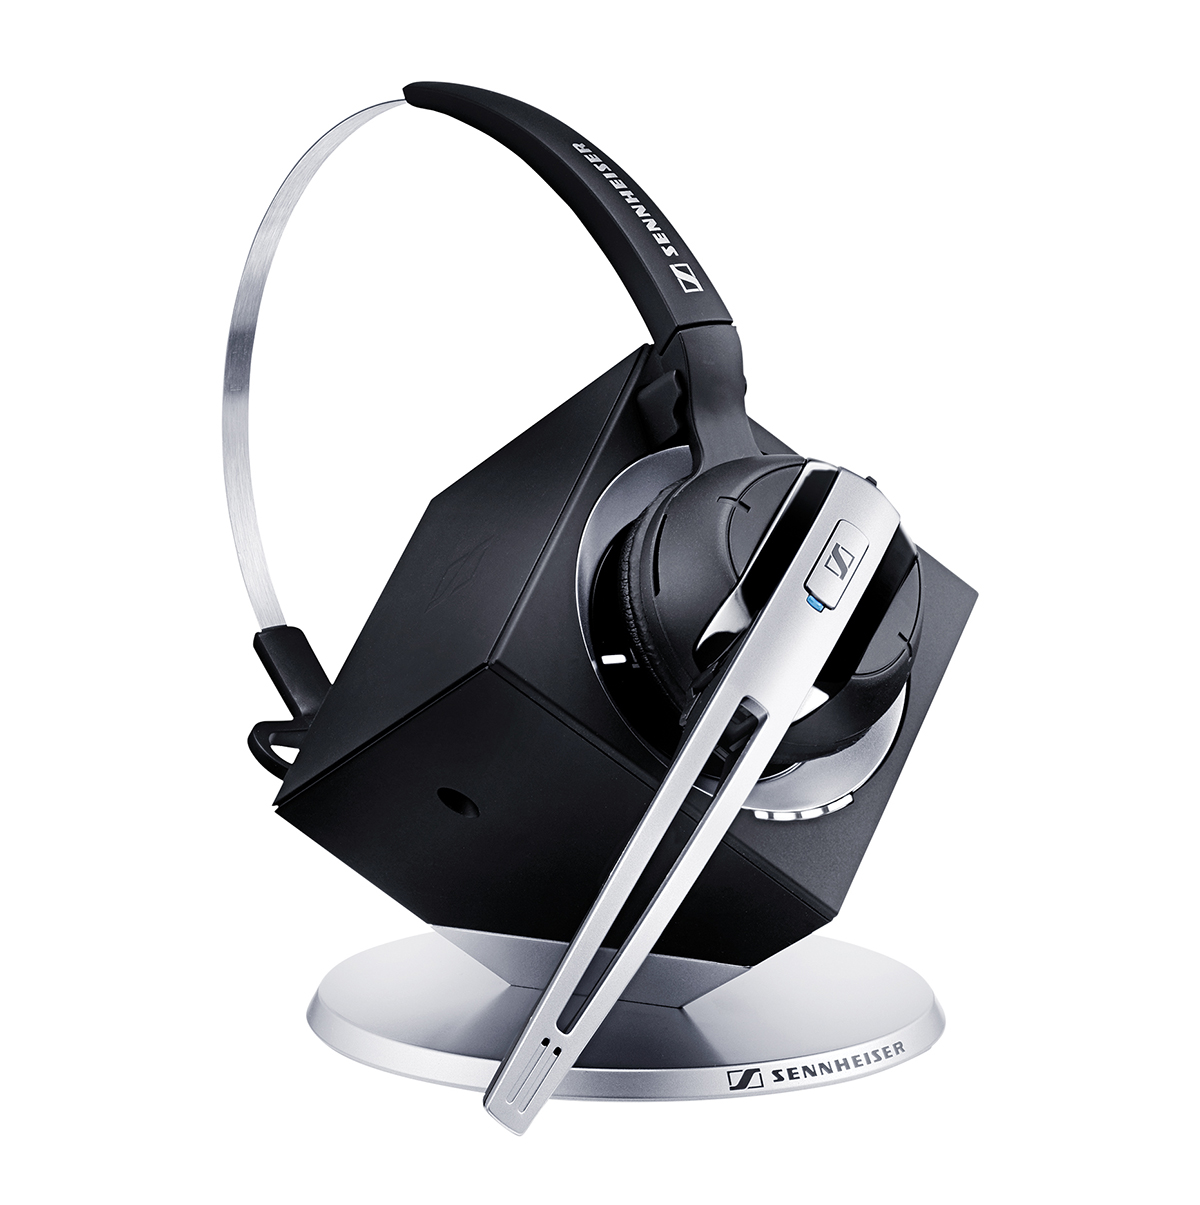 EPOS Sennheiser DW-10ML Dual Connectivity DECT Mono Headset